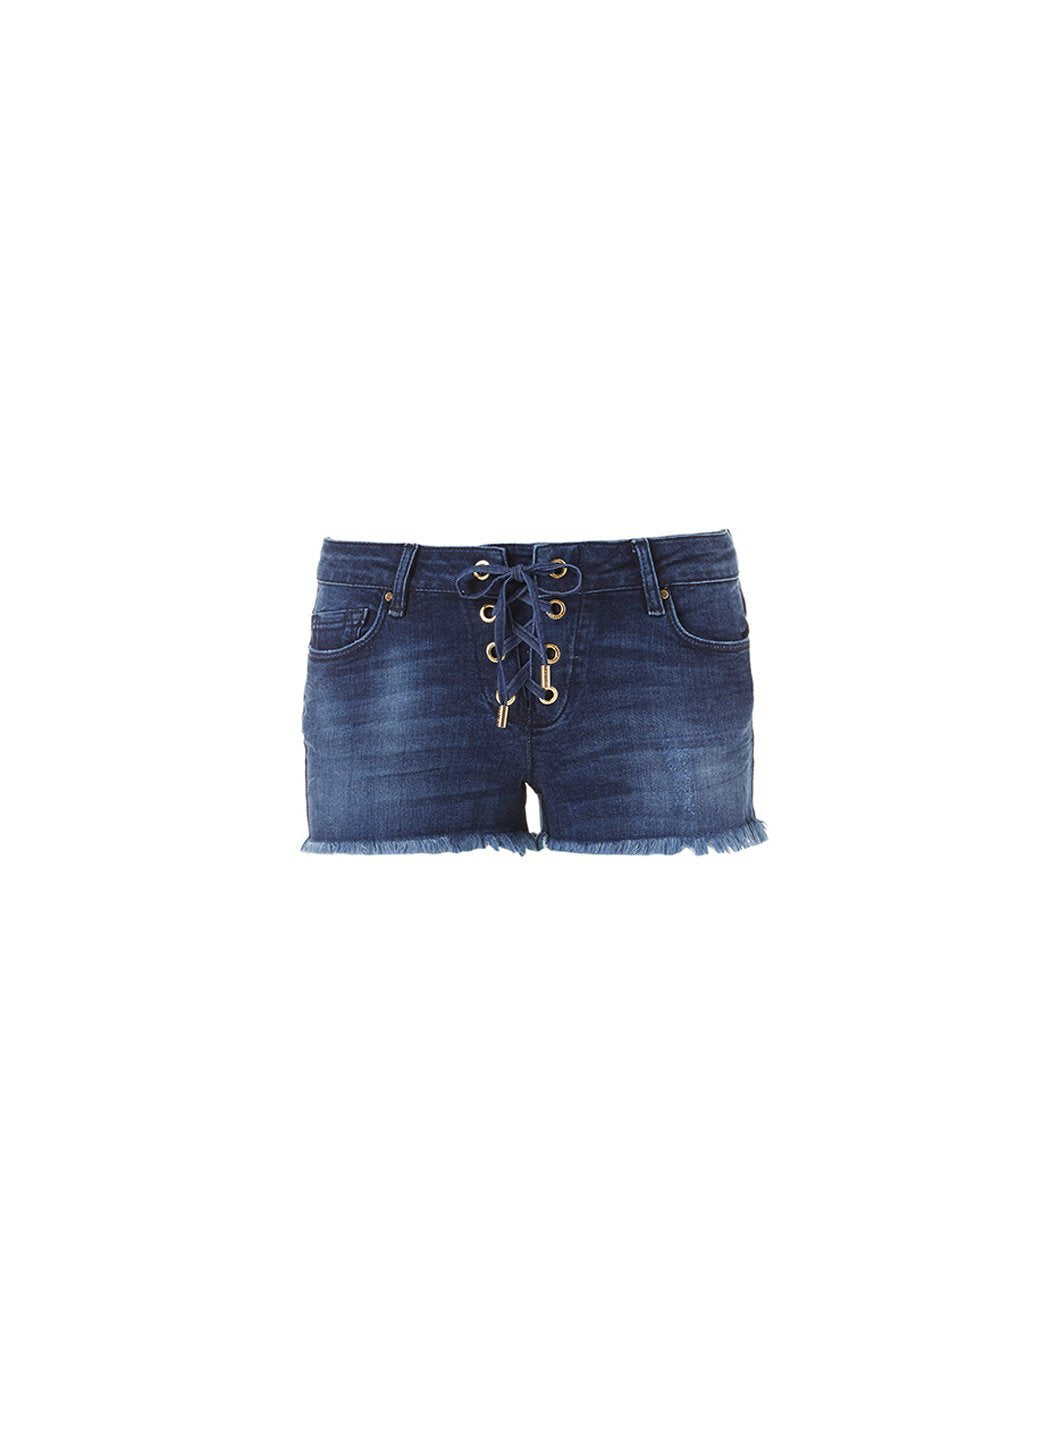 alexi blue denim laceup shorts 2019